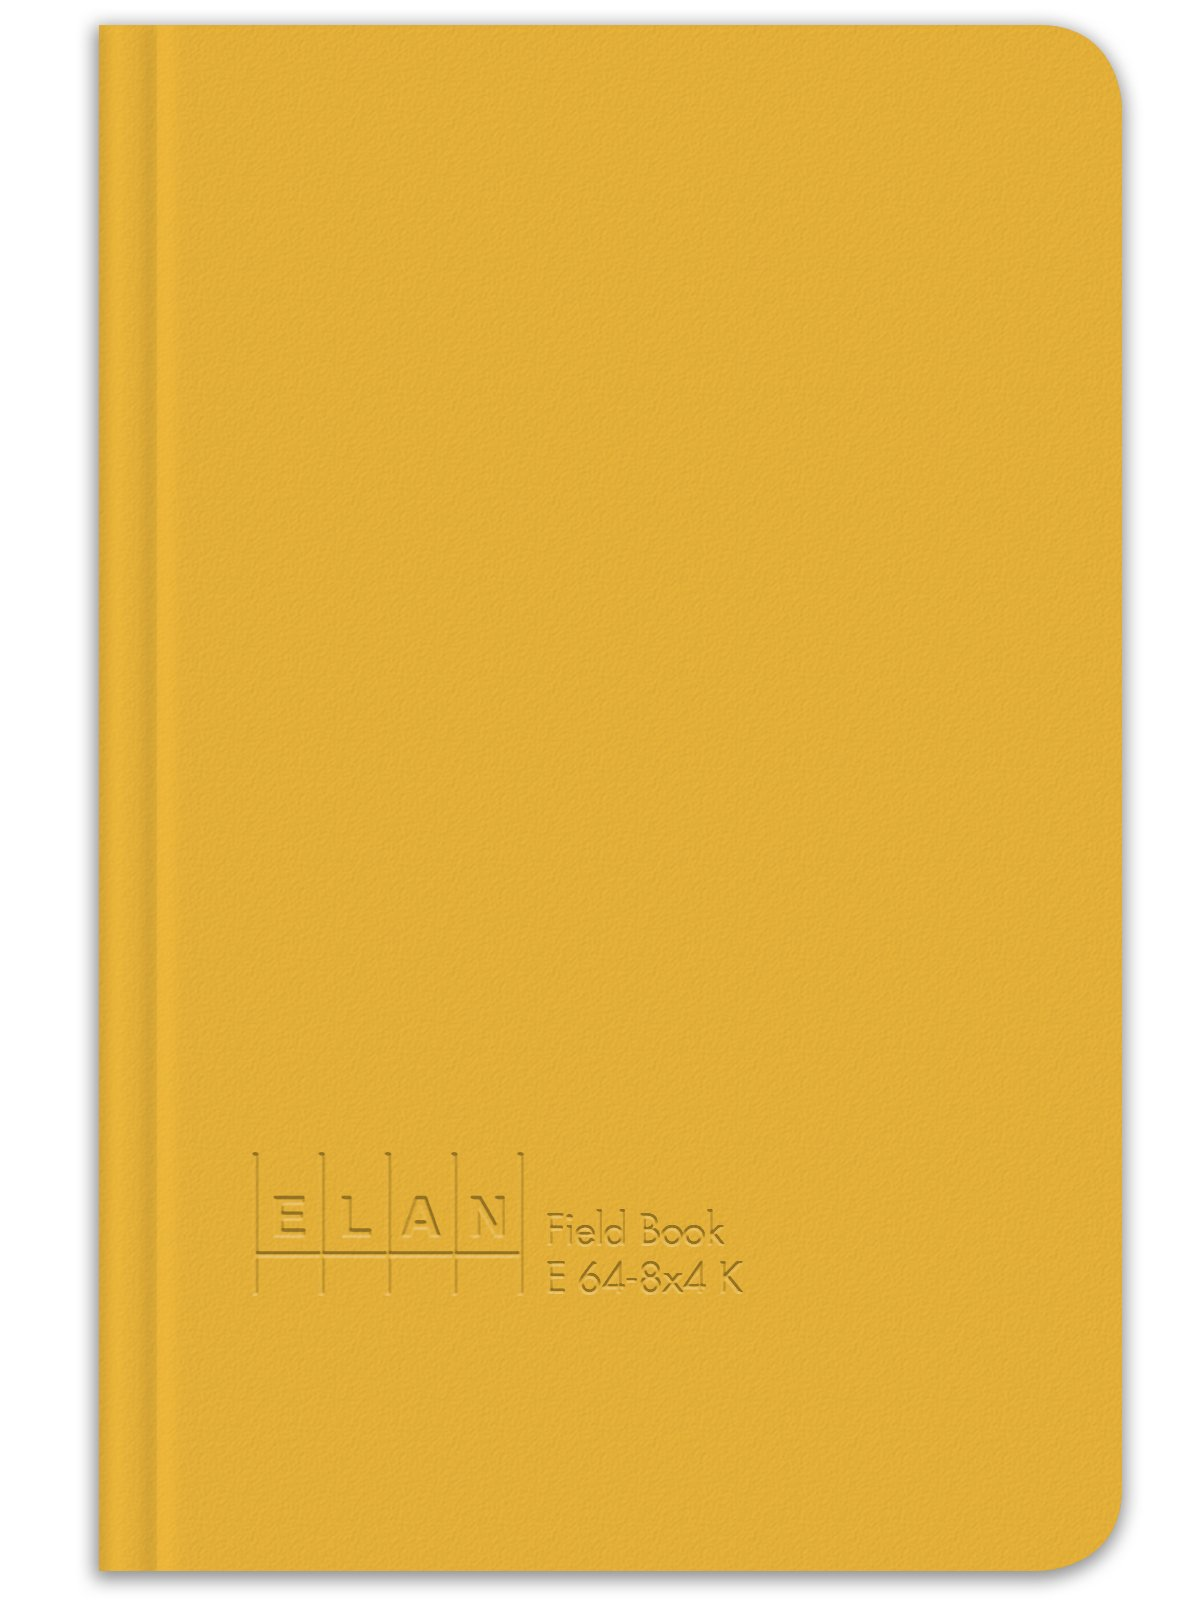 Elan Publishing Company E64-8x4K King Size Field Surveying Book 6 x 9, Yellow Cover (Pack of 6)